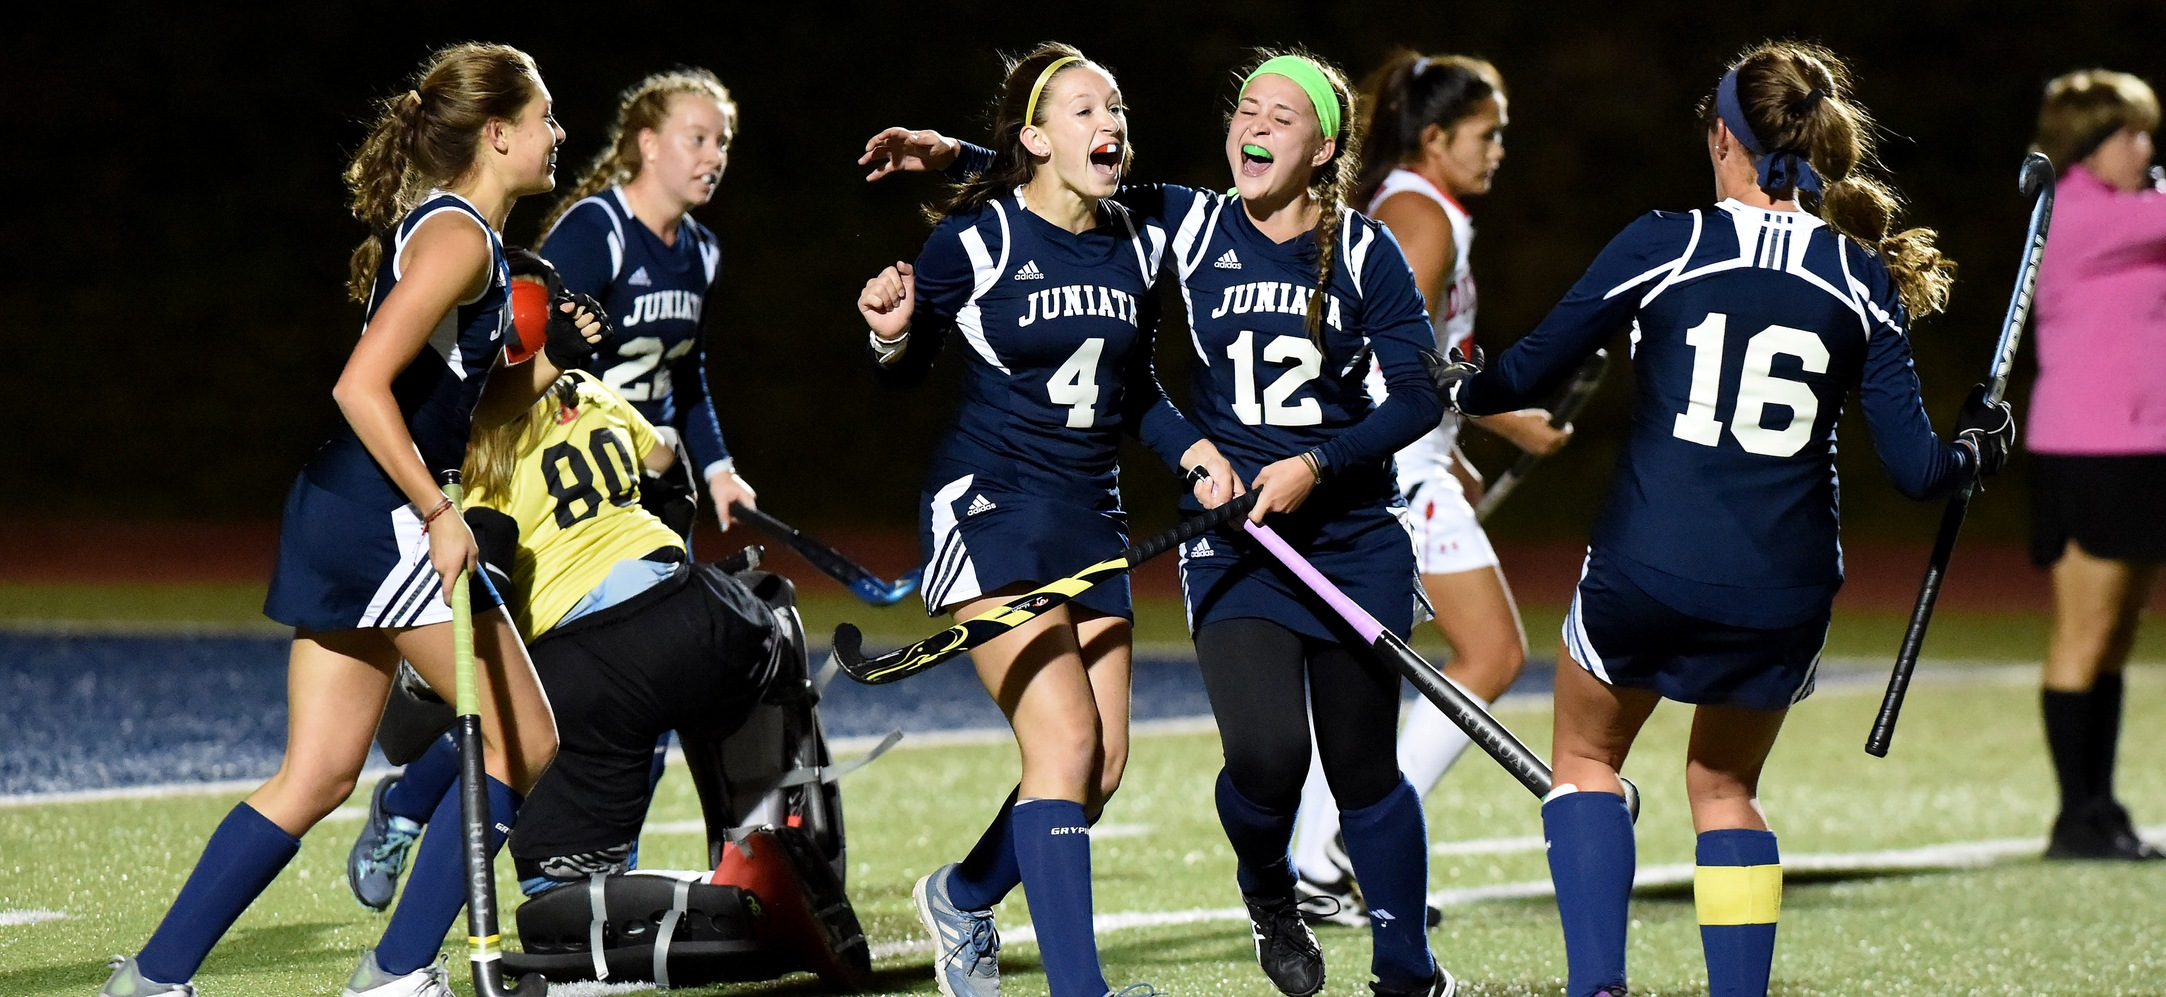 Sarah Alexander and Olivia Marker each scored a goal for Juniata in their win over Dickinson.